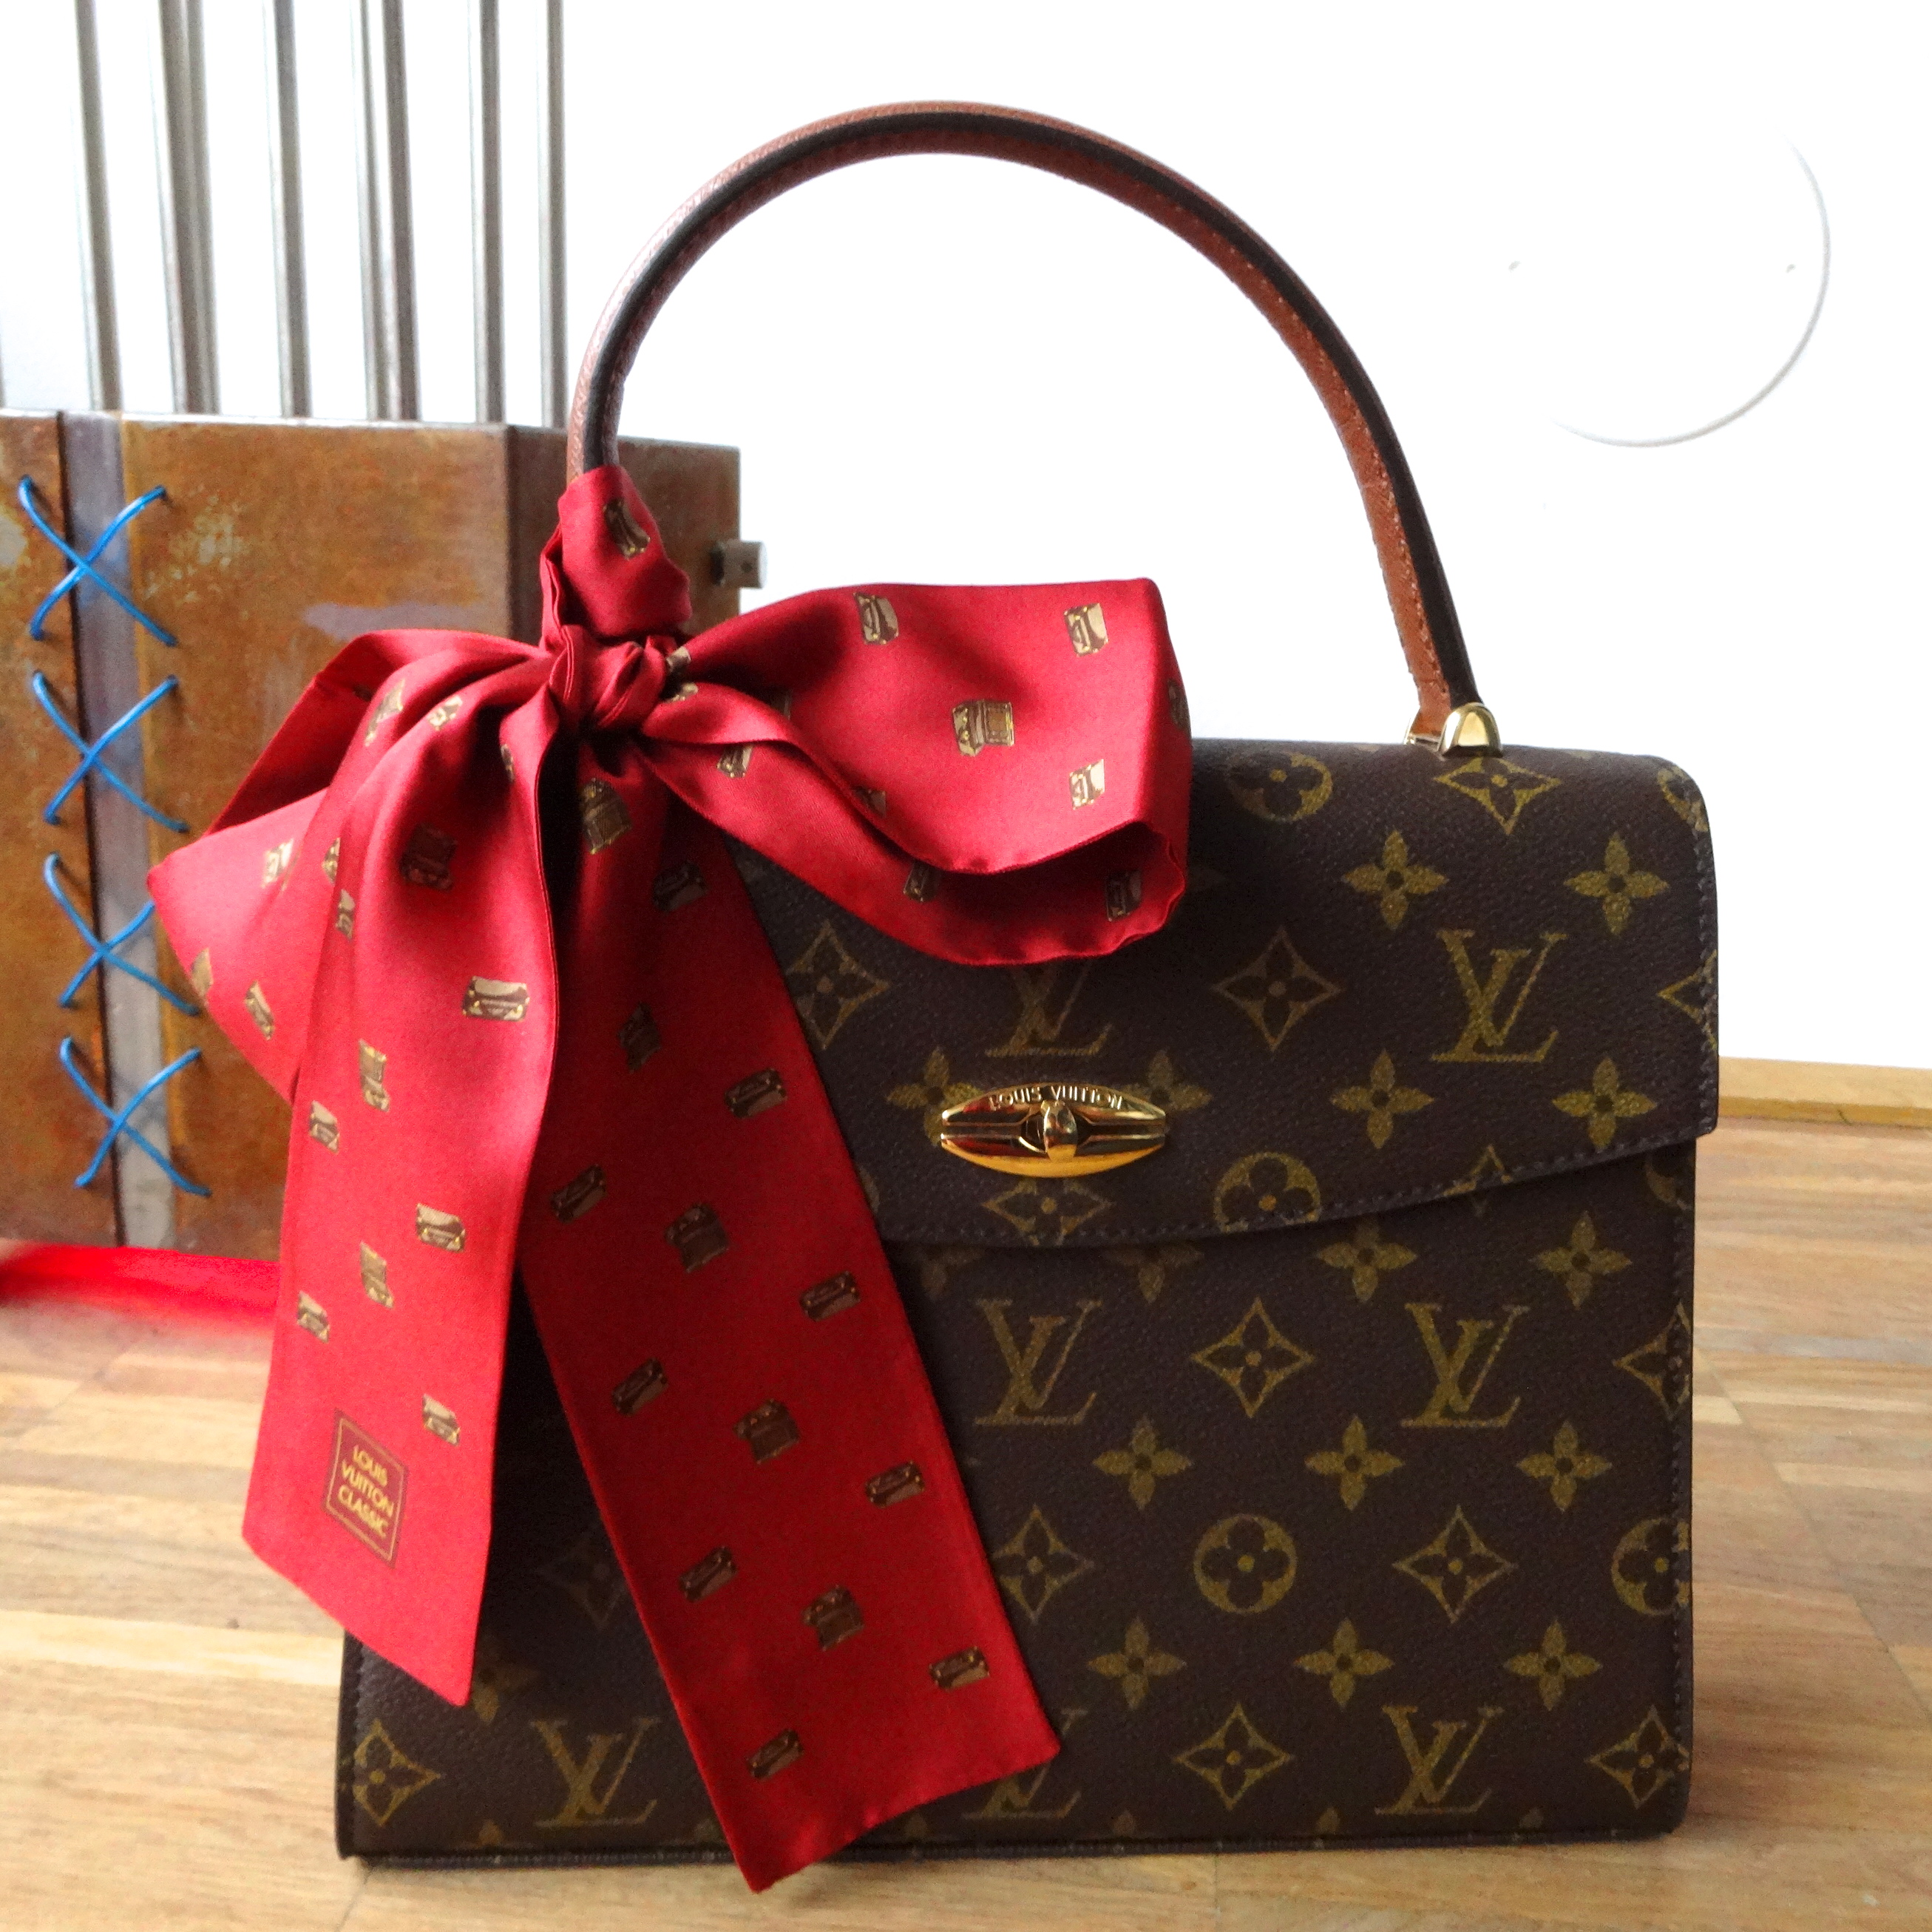 Malesherbes with Louis Vuitton Classic Bandeau